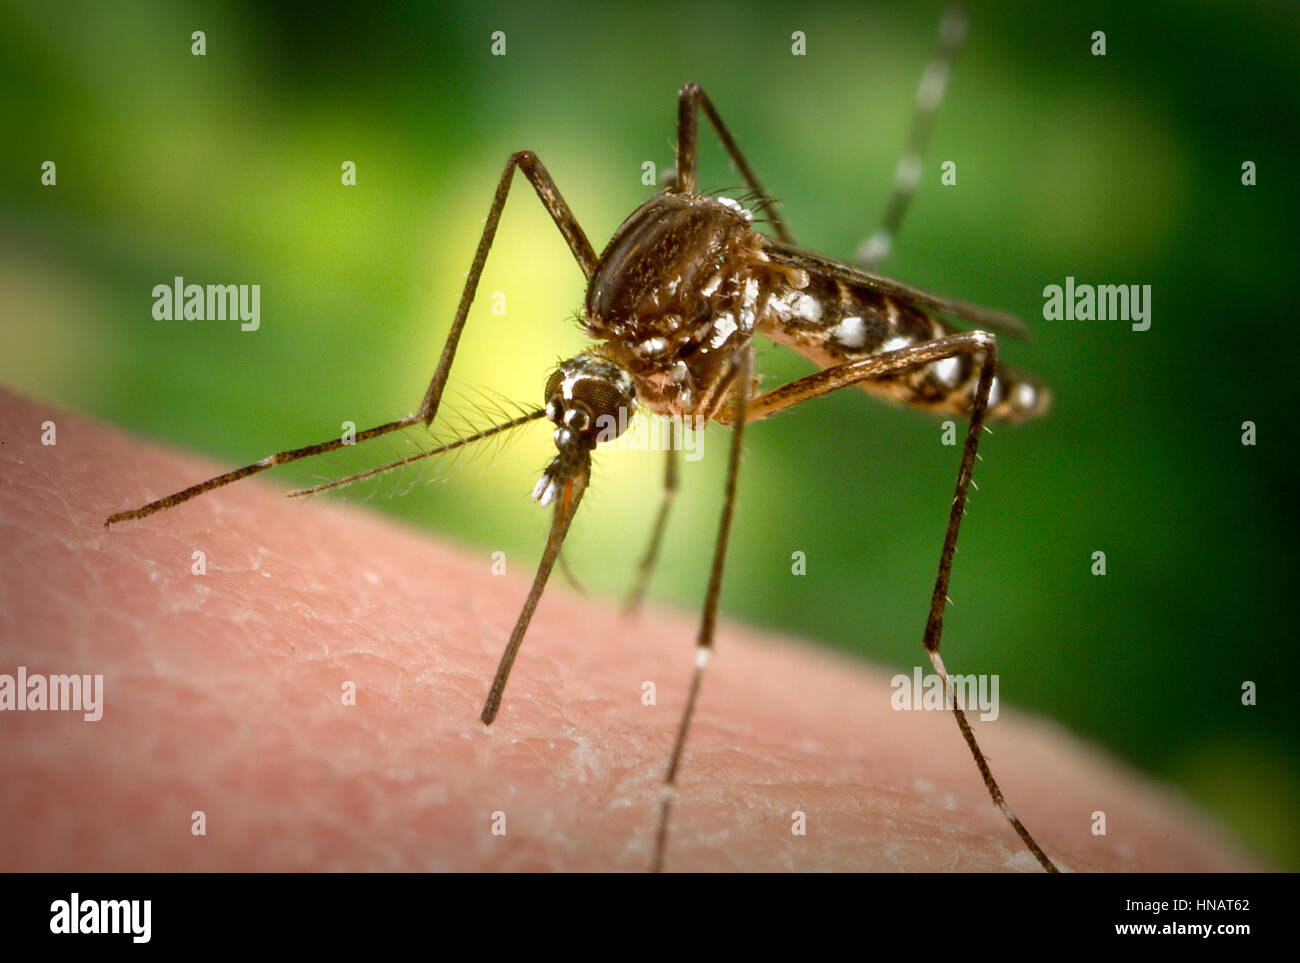 A female Aedes aegypti mosquito inserting her fascicle through the skin surface of her host.  The Aedes aegypti - Stock Image